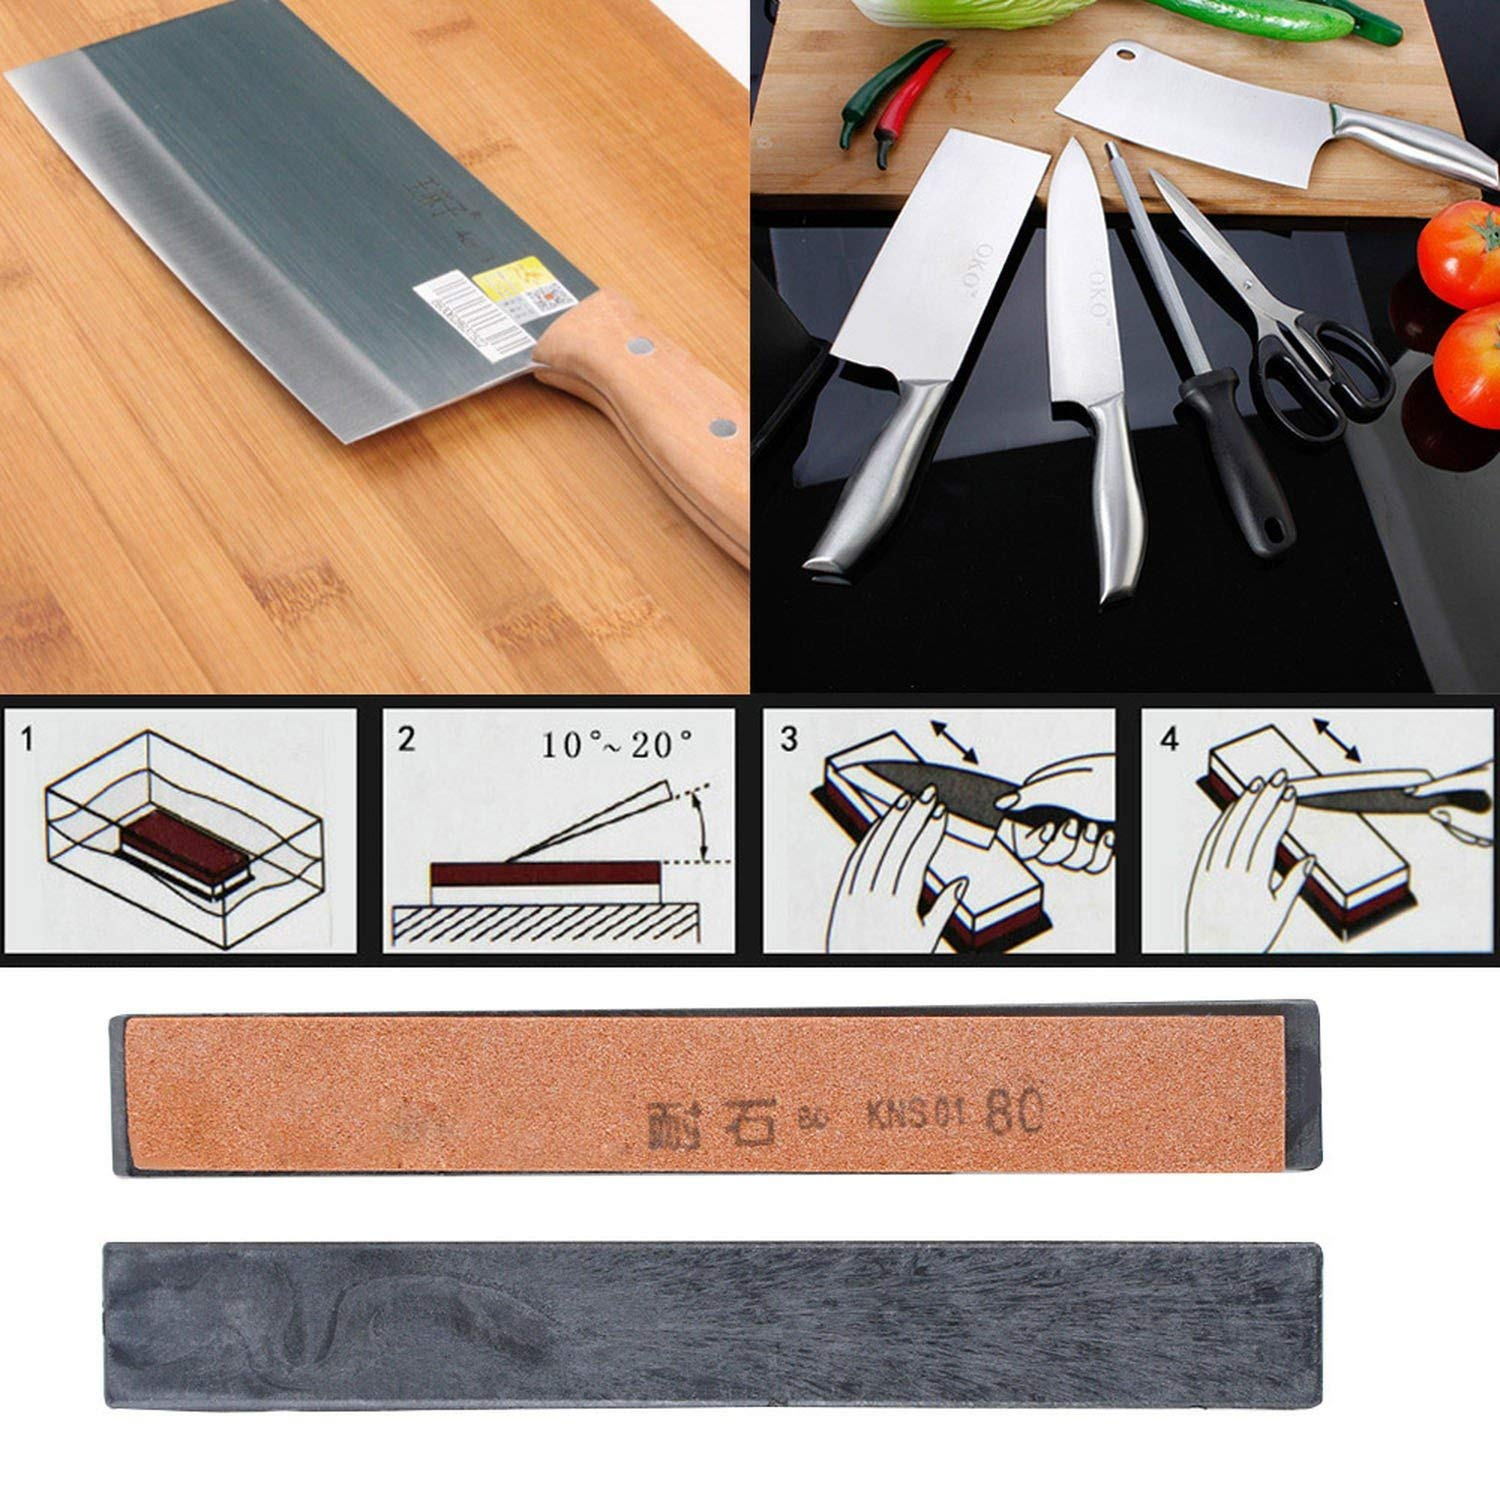 Polishing Grit Sharpener Stone Knife Sharpening Stone For ...